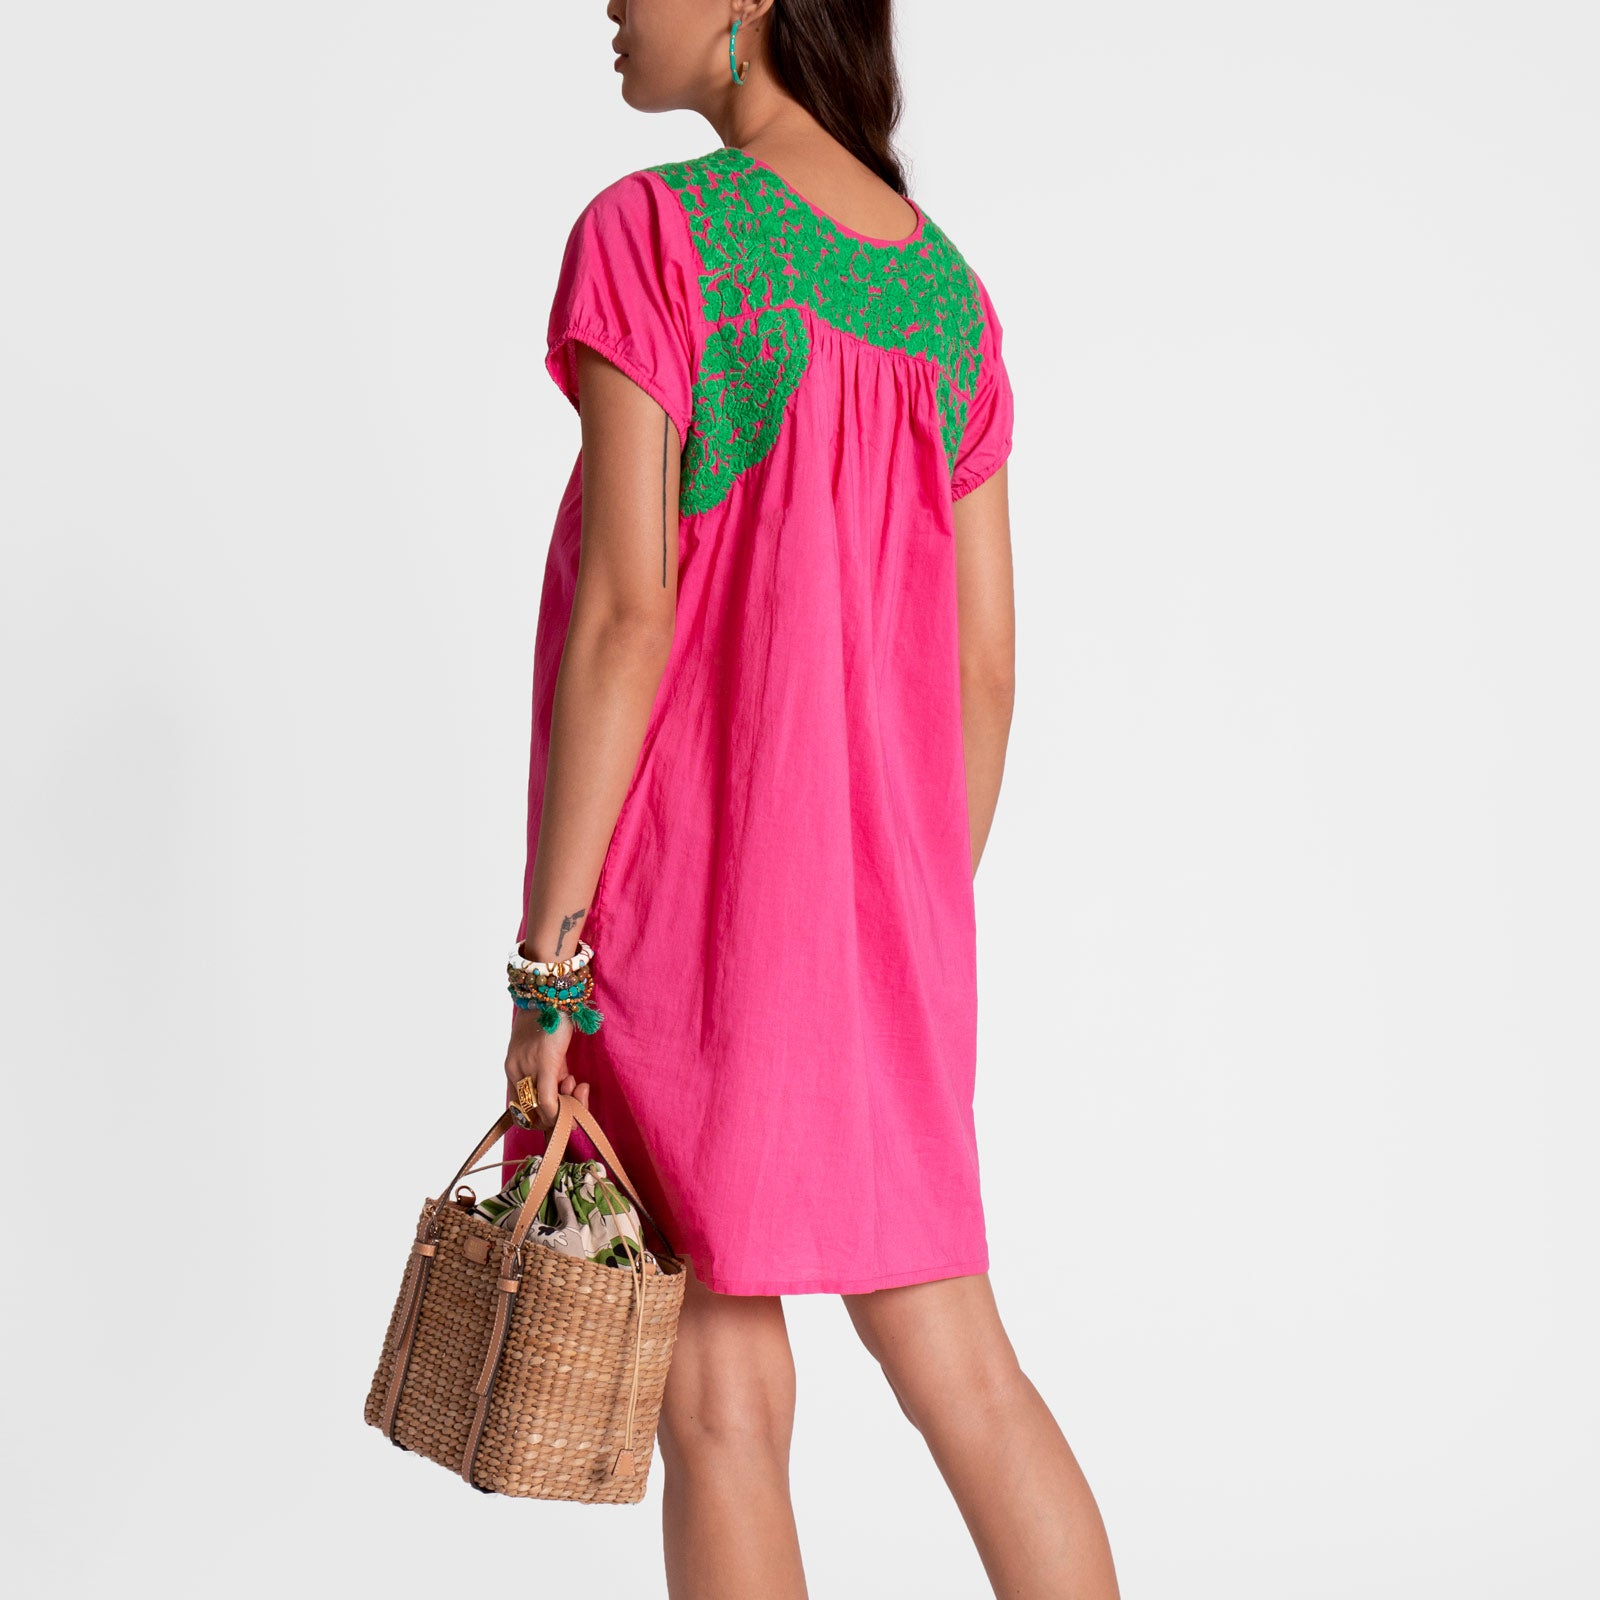 Floral Embroidered Lace Dress Pink Green